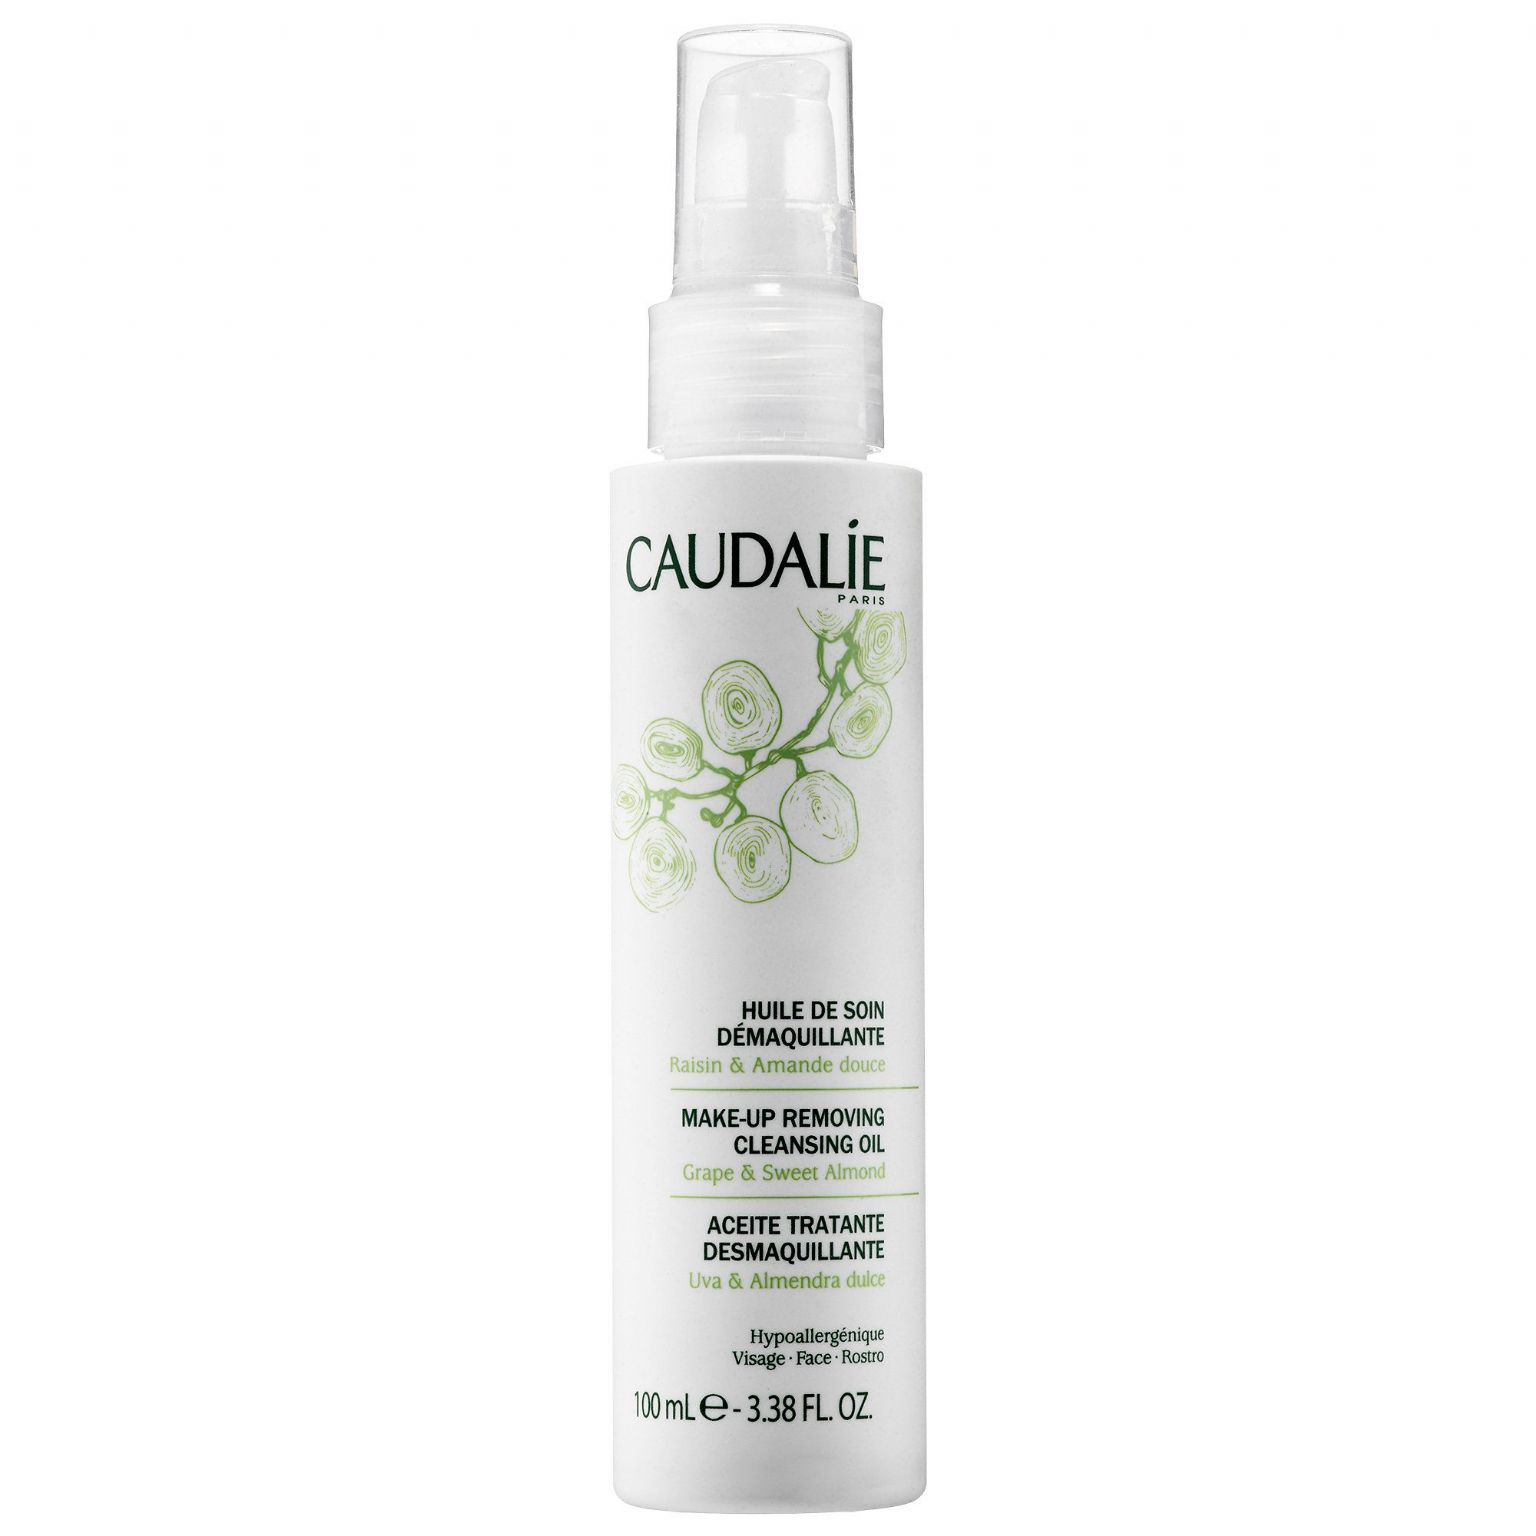 Makeup Removing Cleansing Oil